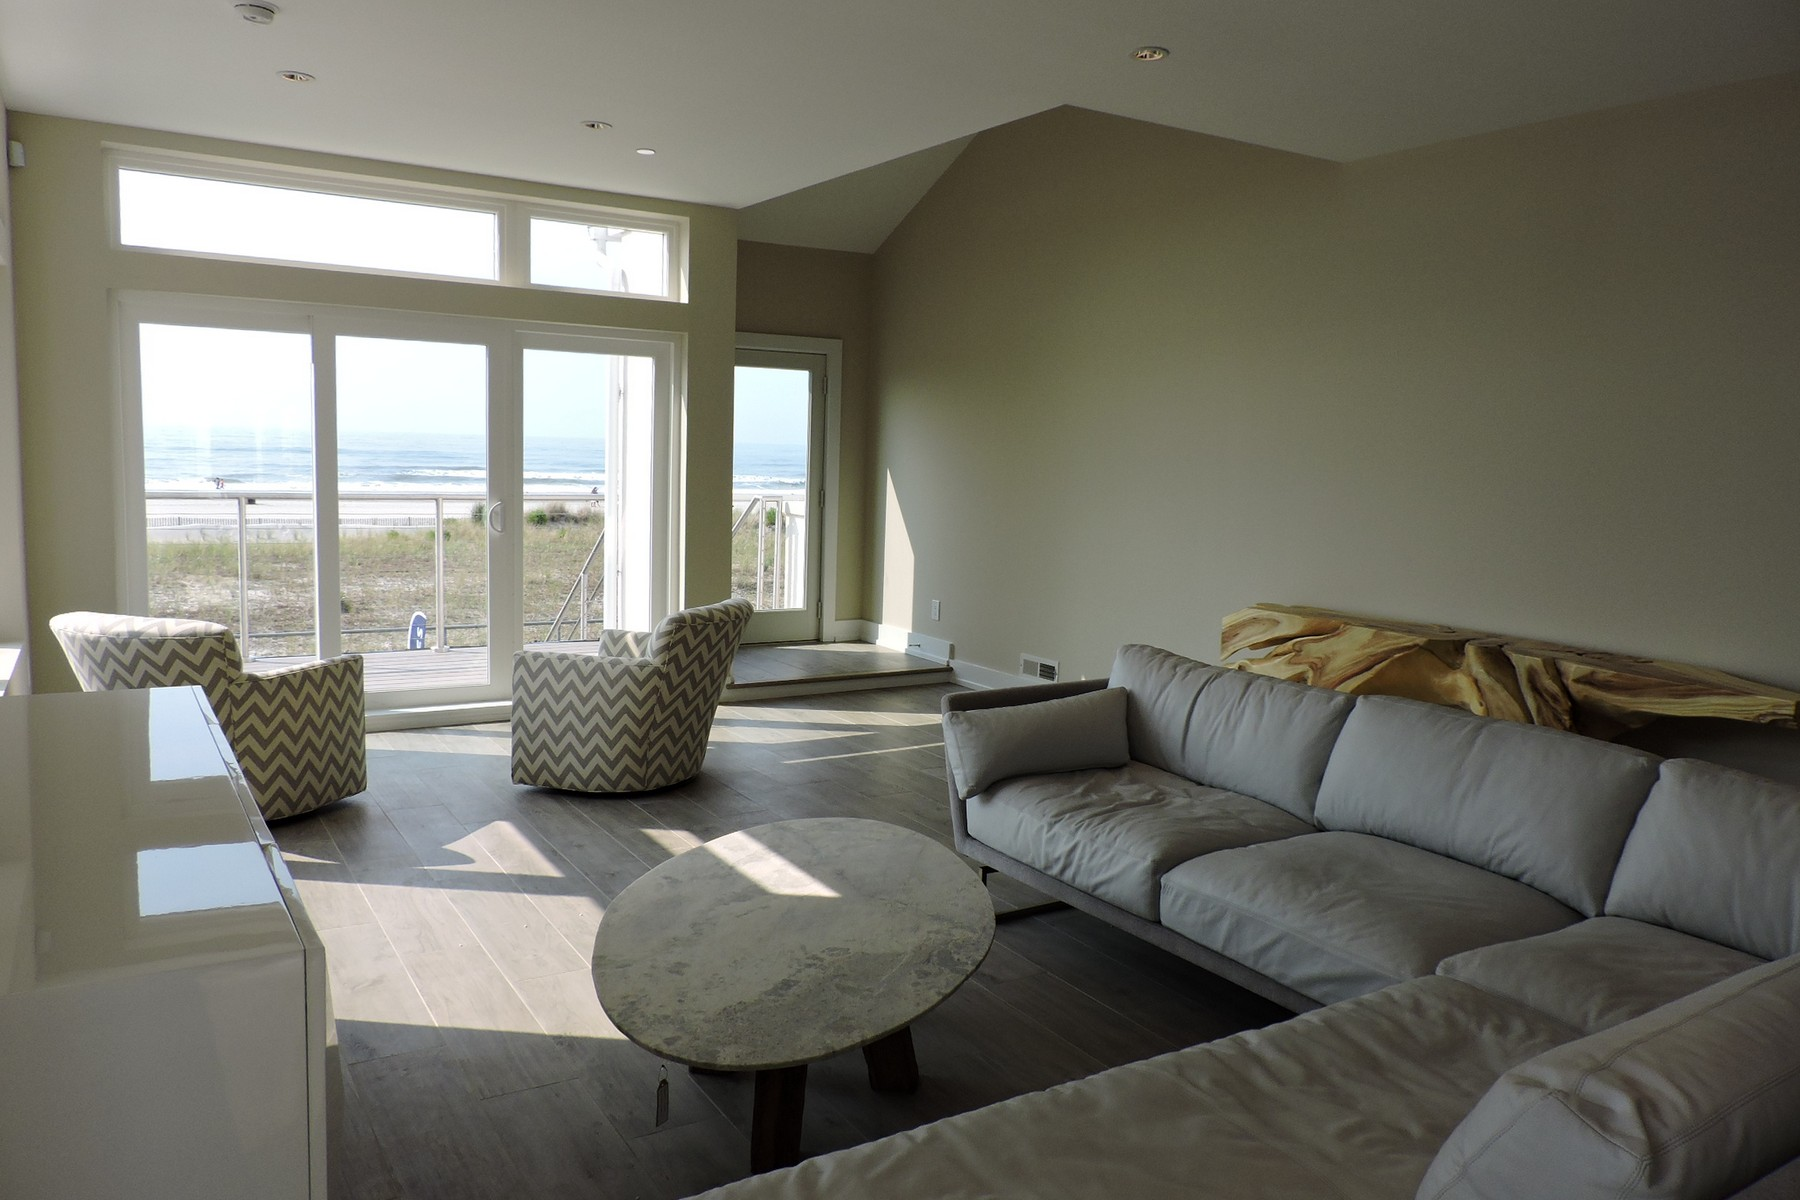 Maison unifamiliale pour l Vente à 5206 Boardwalk Unit 1 Ventnor City, New Jersey 08406 États-Unis